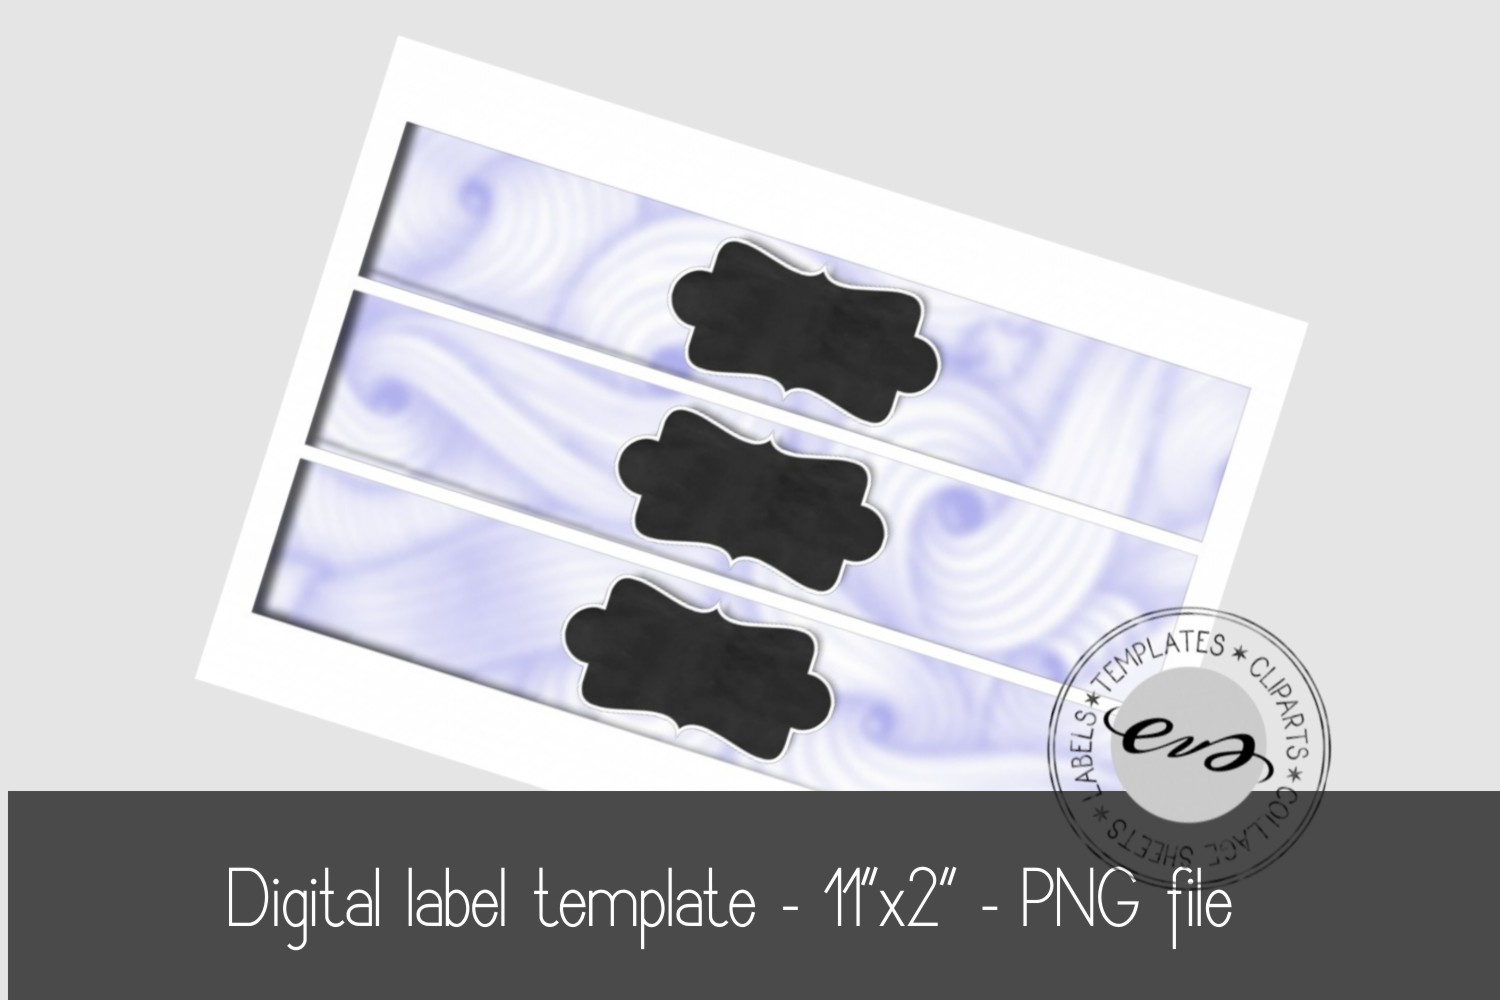 Digital label template example image 1